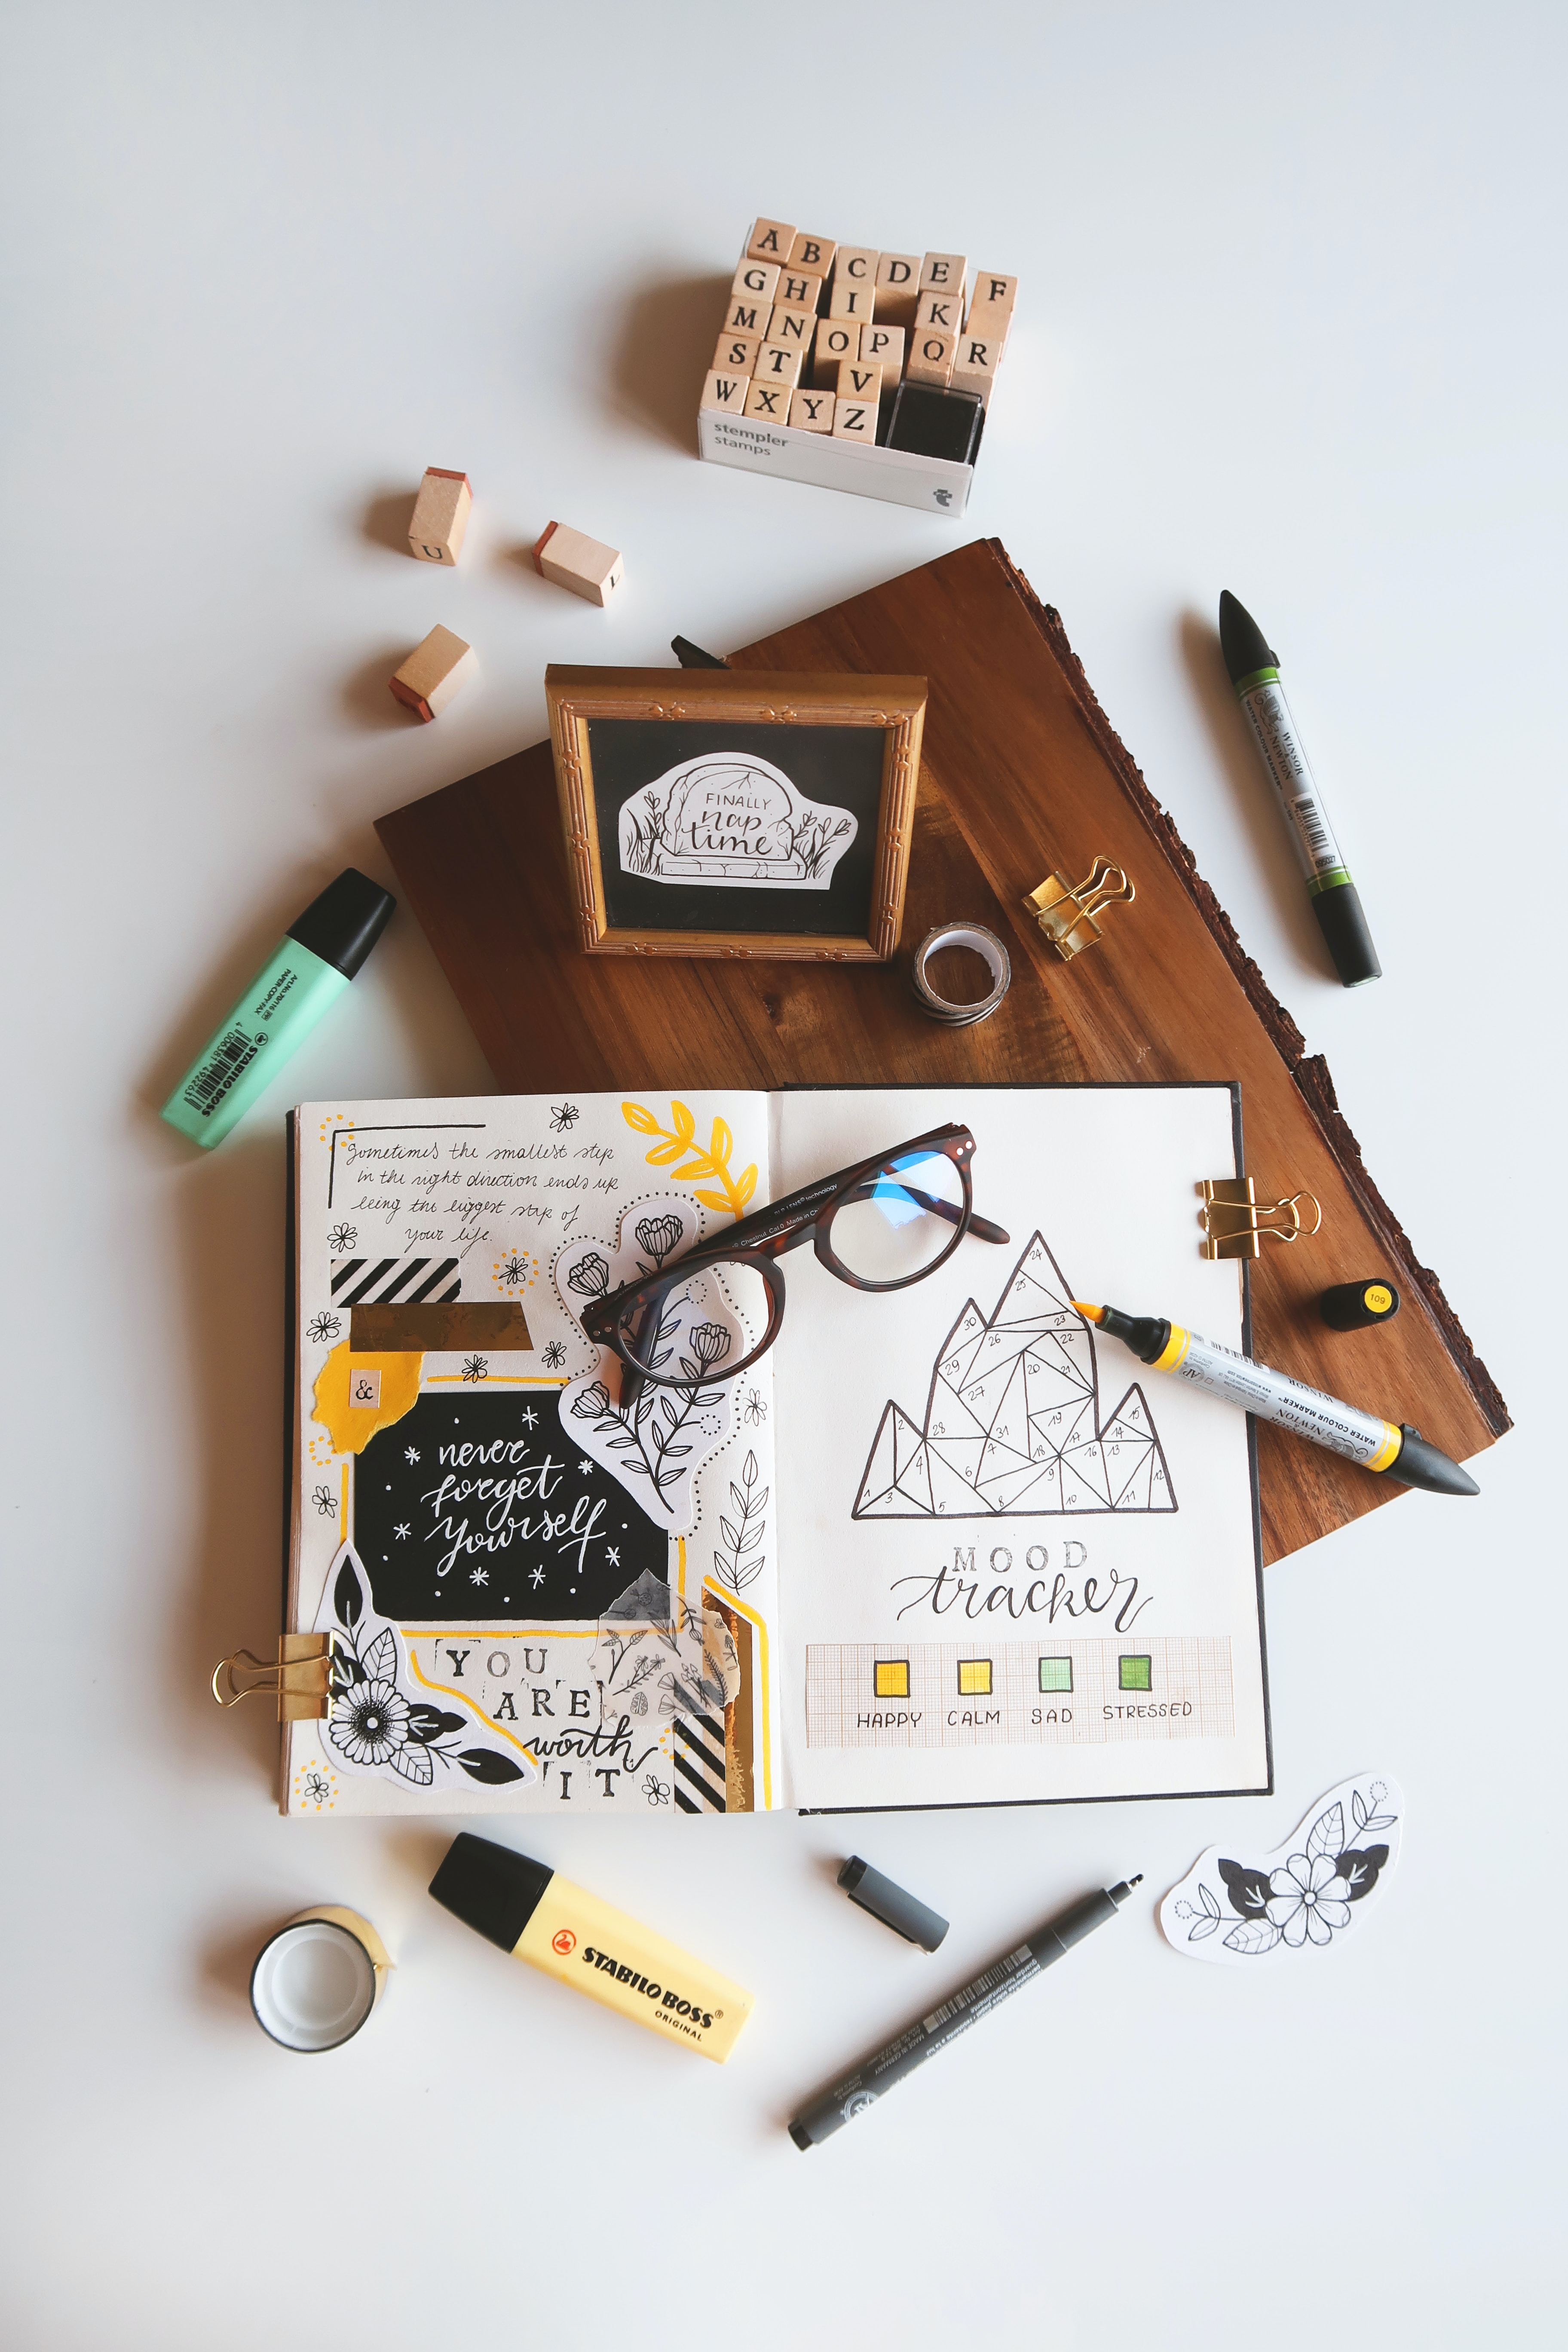 On a white table is a block of wood, on top of the wood is an open bullet journal. The bullet journal has scrapbooking designs on the left page and the right page has a mood tracker. Next to the bullet journal there is washi tapes, stamps and pens.